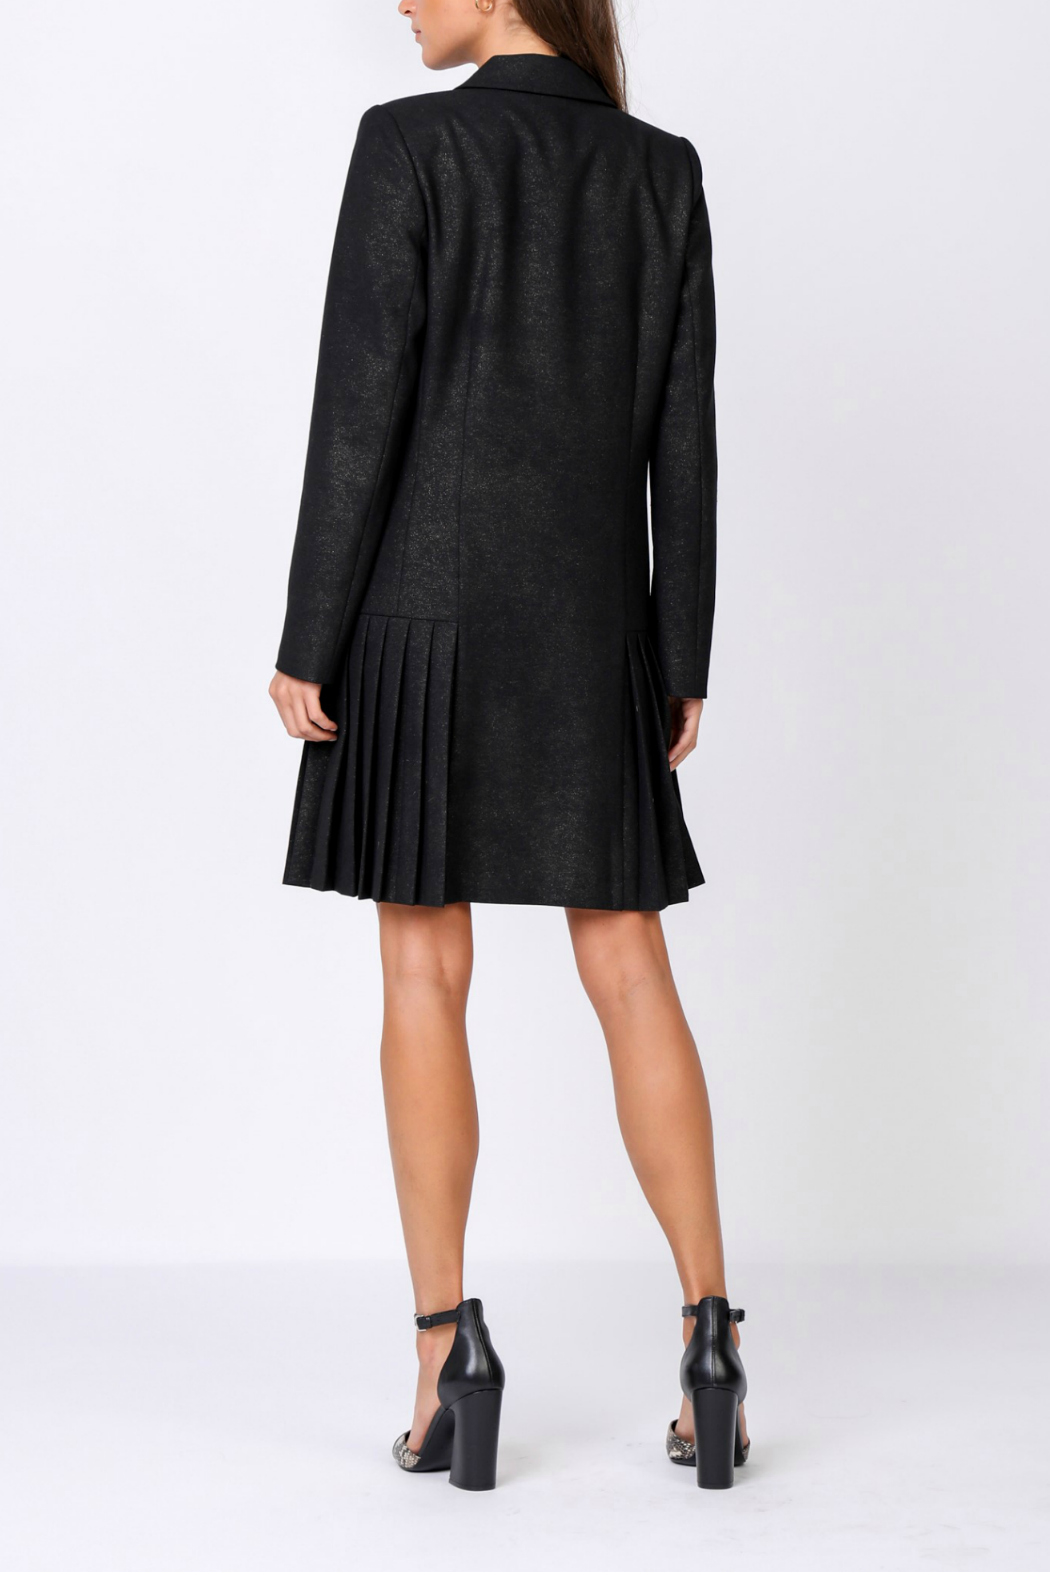 Current Air Pleated hem jacket dress - Front Full Image